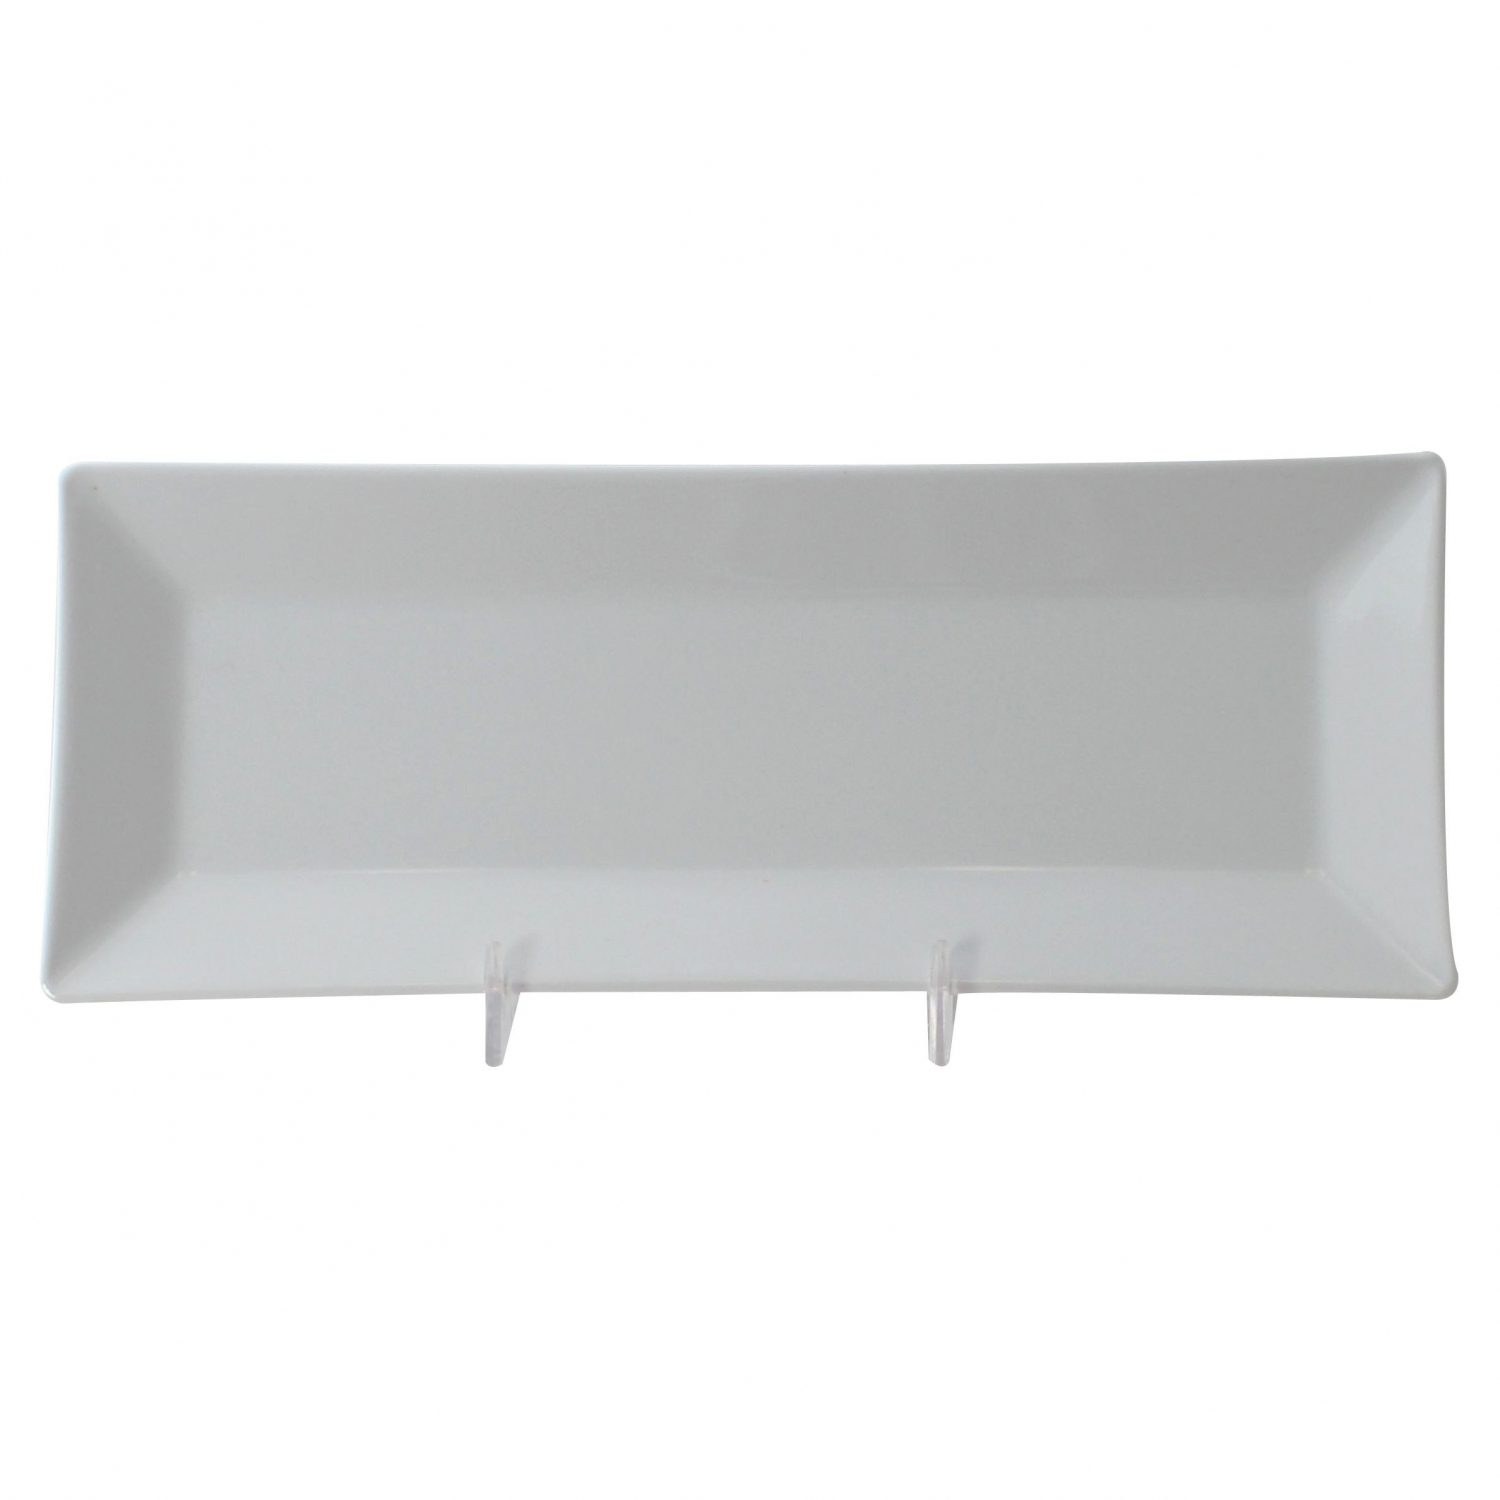 "Thunder Group 29110WT Classic White Melamine Rectangular Plate 10-1/4"" x 4"" - 1 doz."